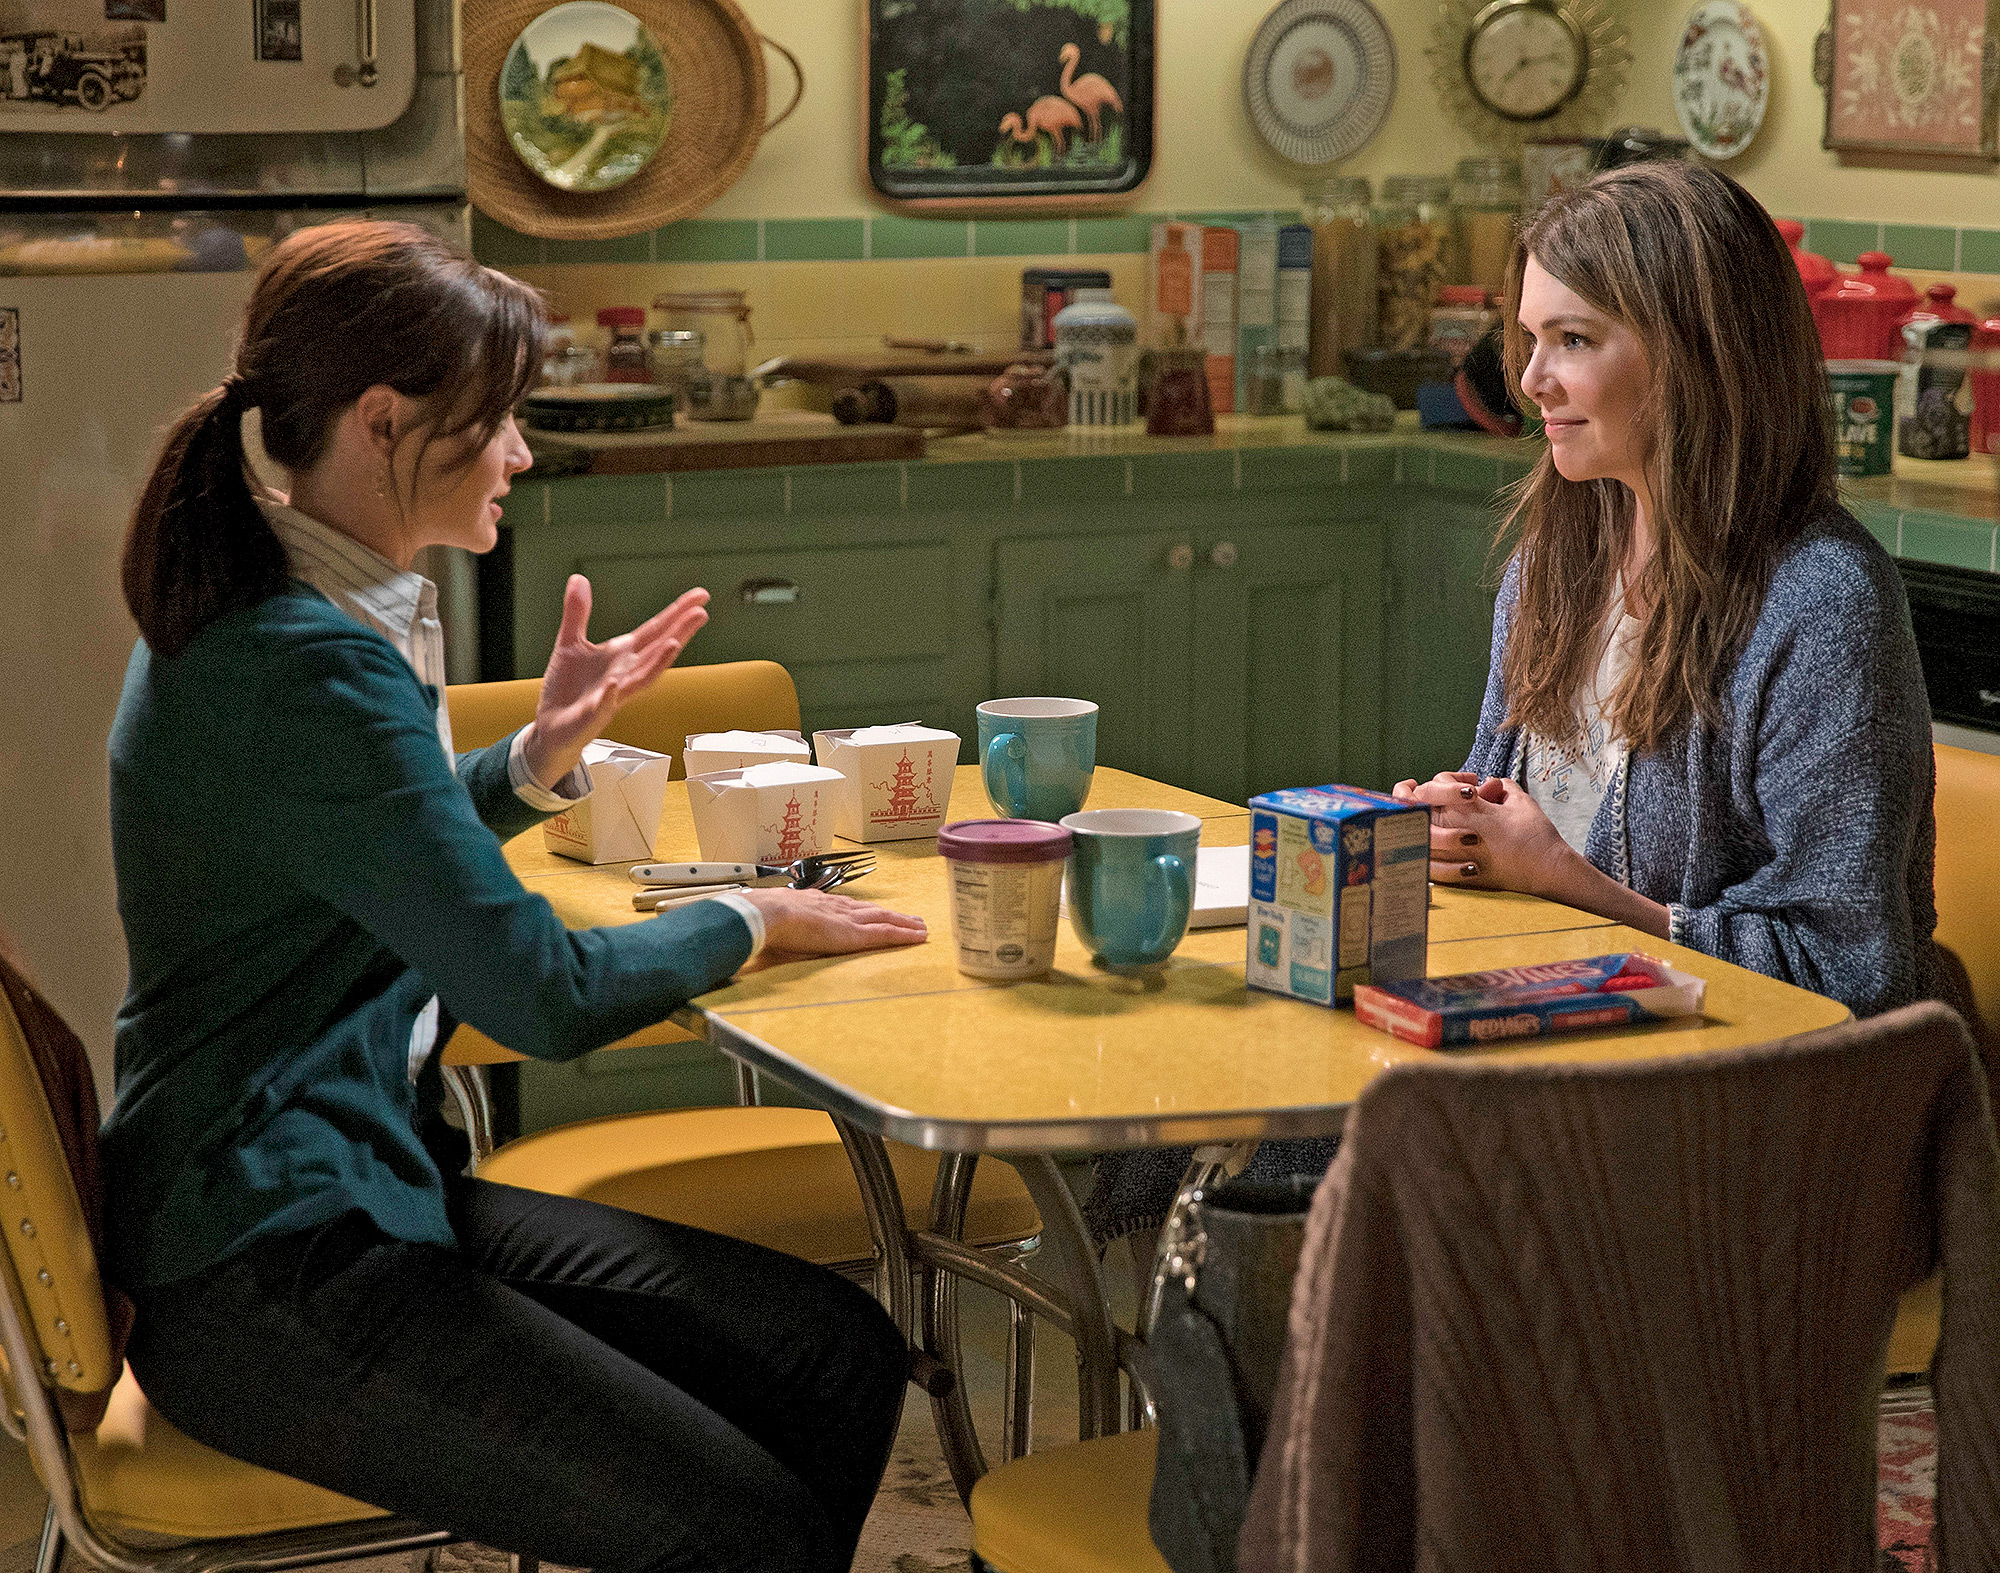 Calling All Gilmore Girls Fans! You Can Soon Eat Lunch at Lorelai's Actual House